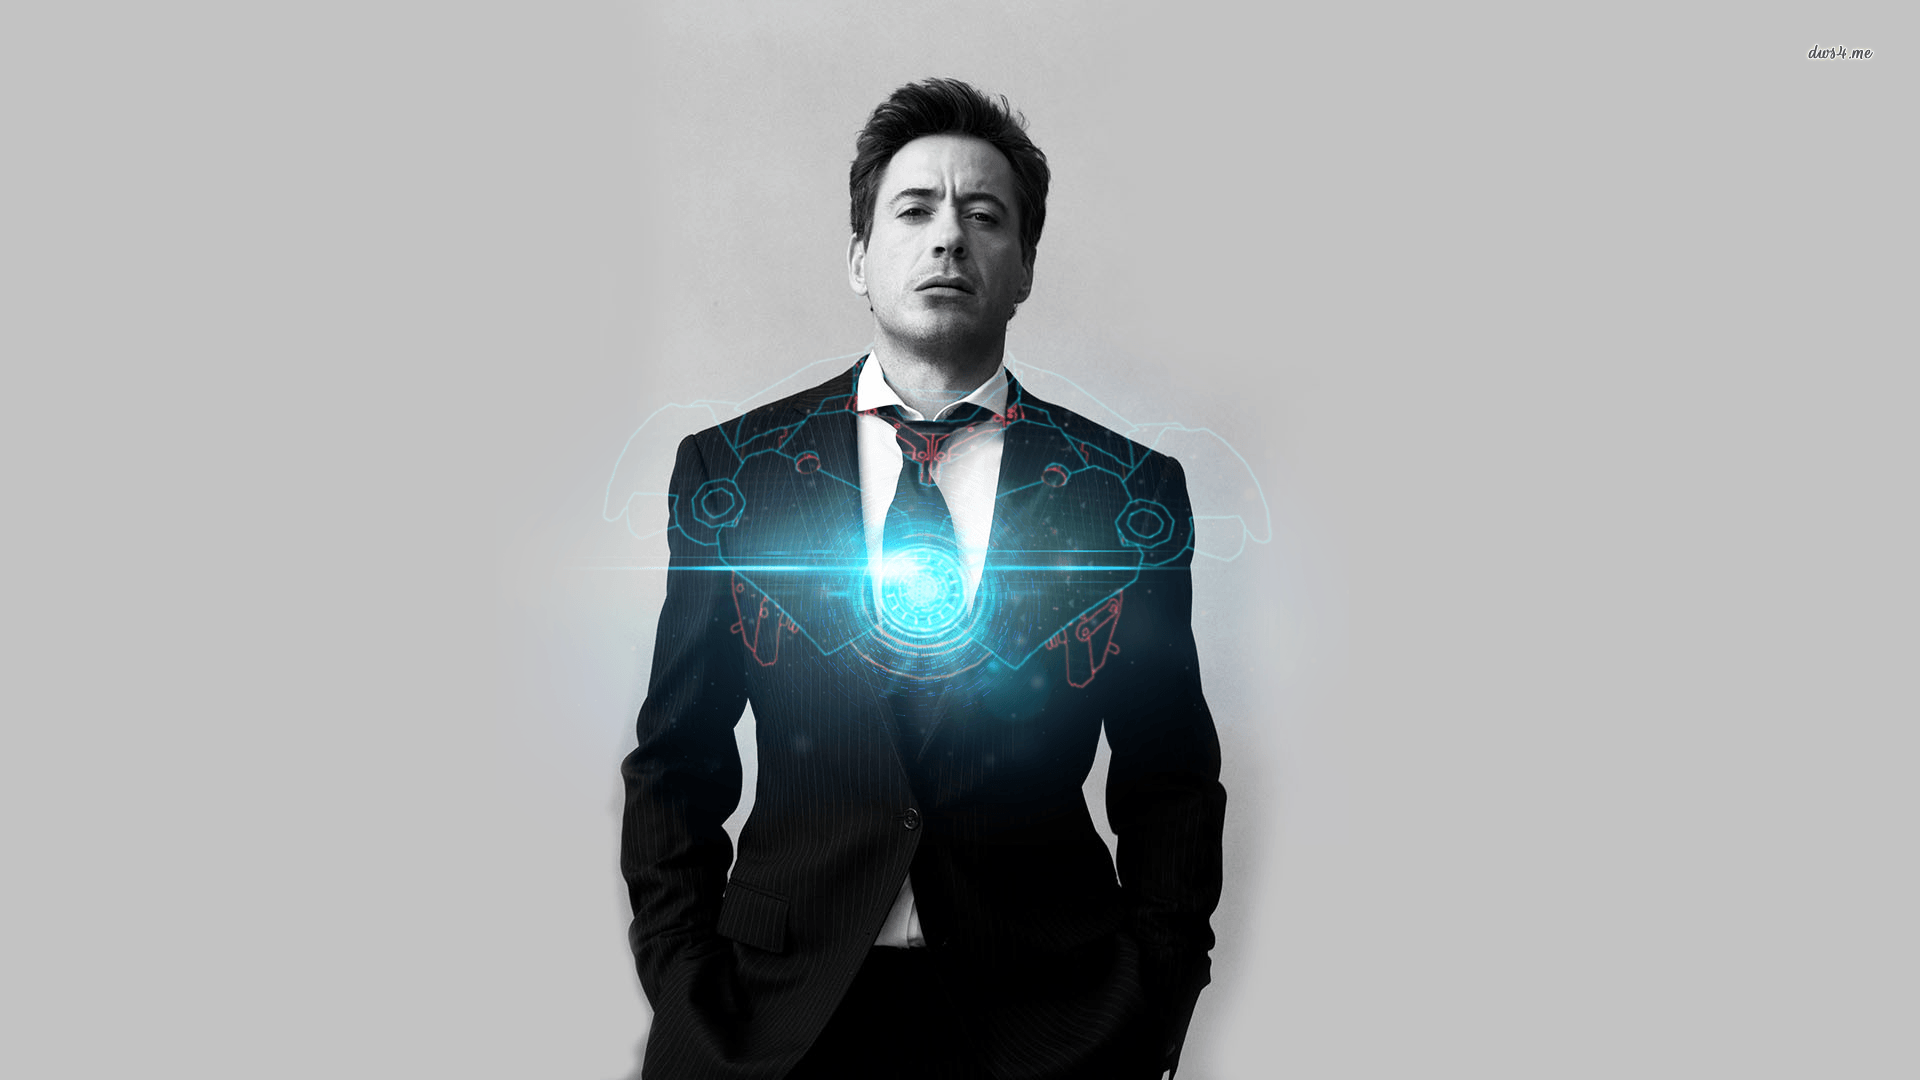 tony stark images hd -#main